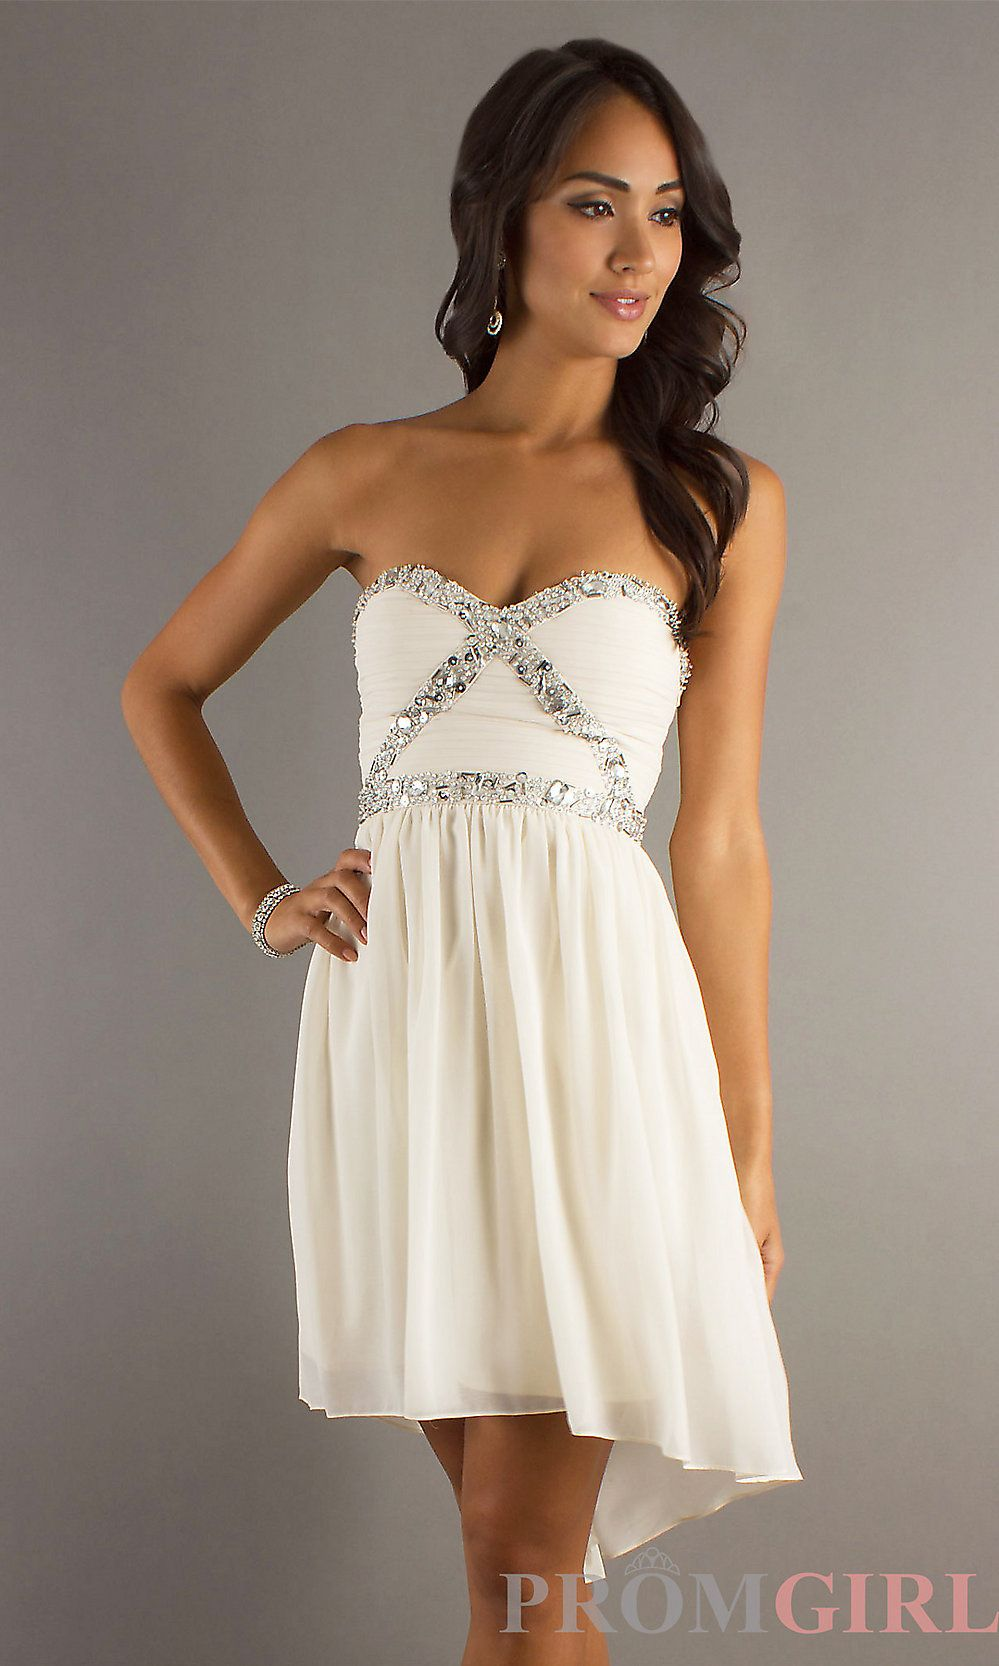 Strapless high low formal dress strapless prom dressespromgirl